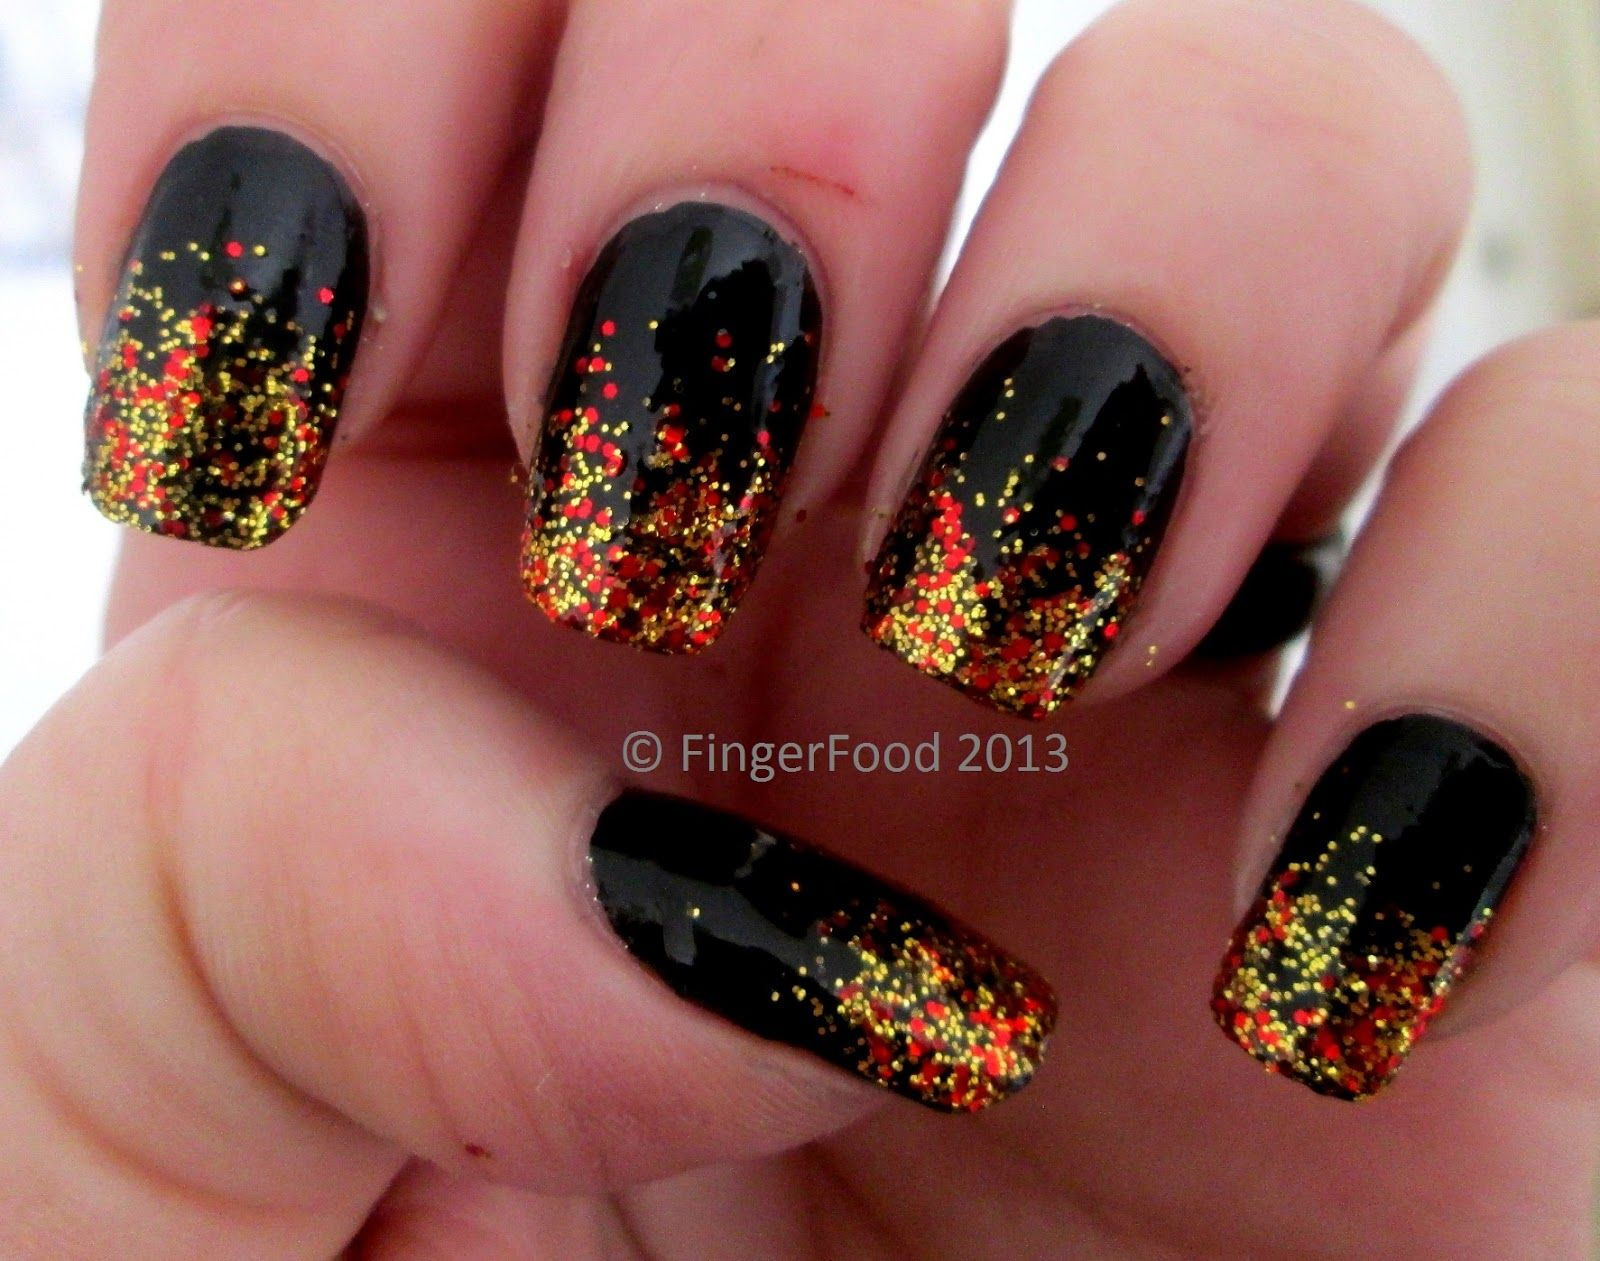 This reminds me of Katniss\' nails in the Hunger Games interview ...